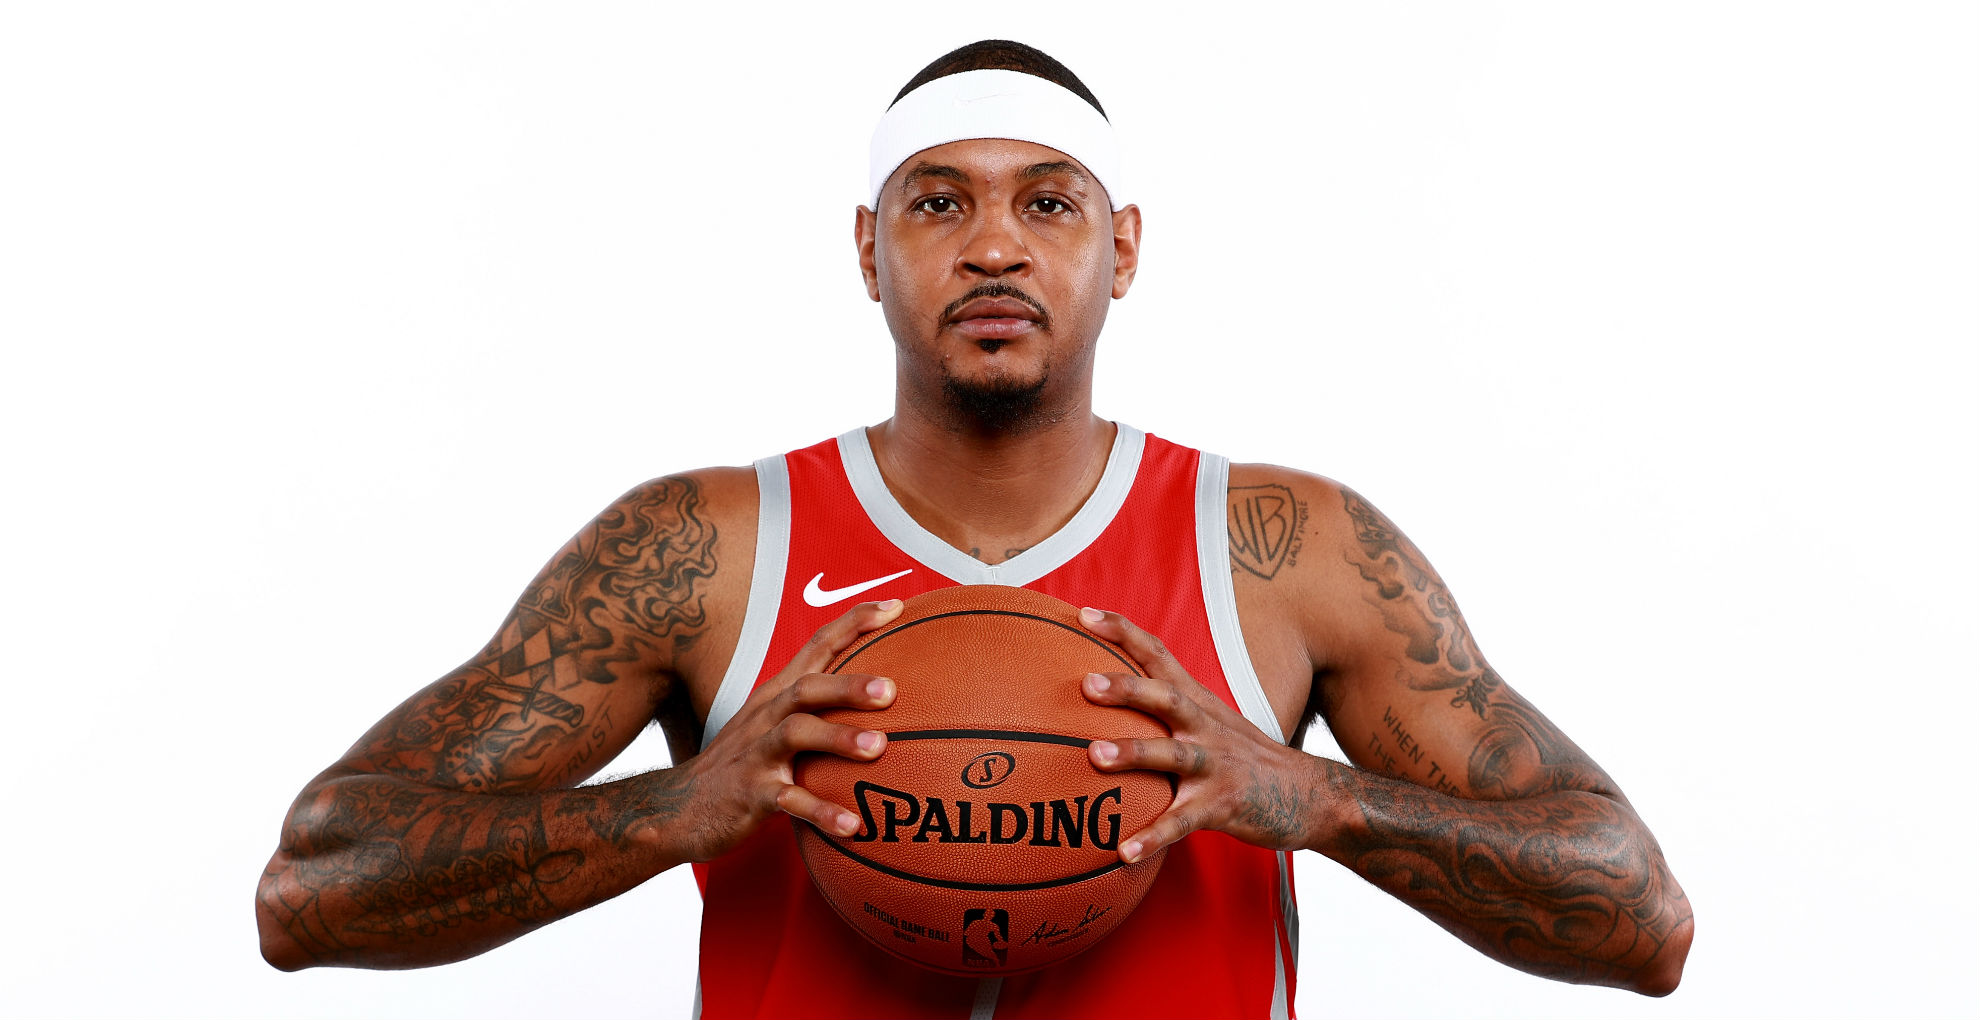 Carmelo Anthony says he has 'a clearer understanding' of his role with Rockets